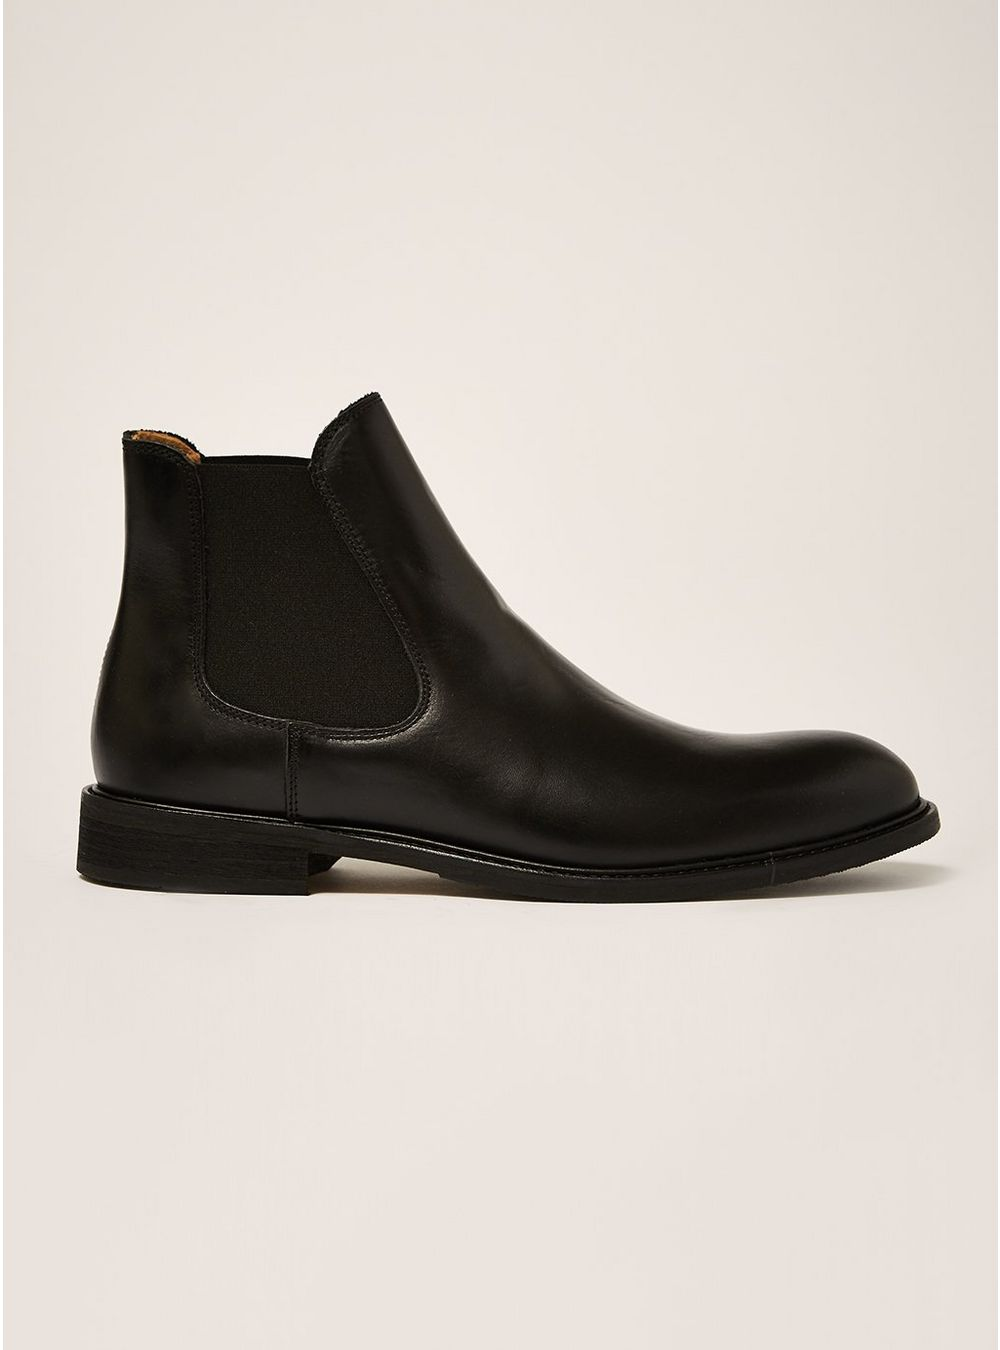 Selected Homme Black Leather Baxter Chelsea Boots